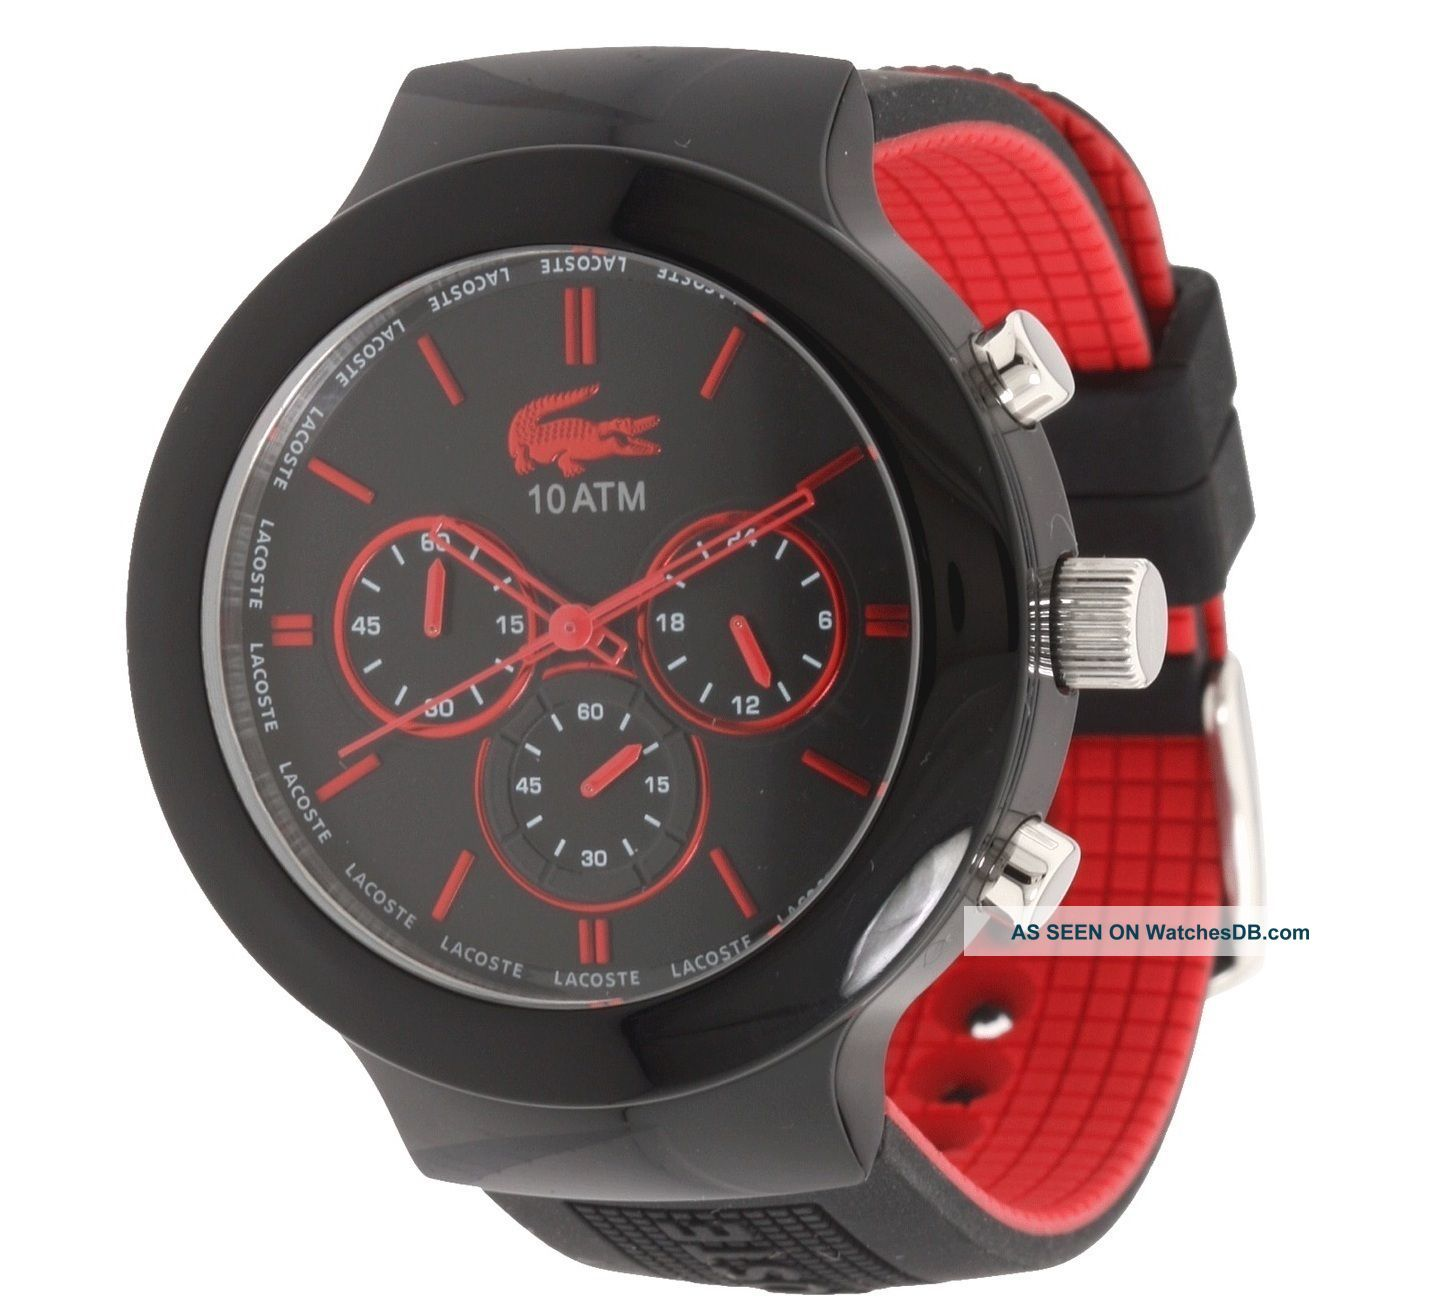 lacoste l ve men chronograph borneo black red silicone strap watch lacoste l ve men chronograph borneo black red silicone strap watch 2010652 photo